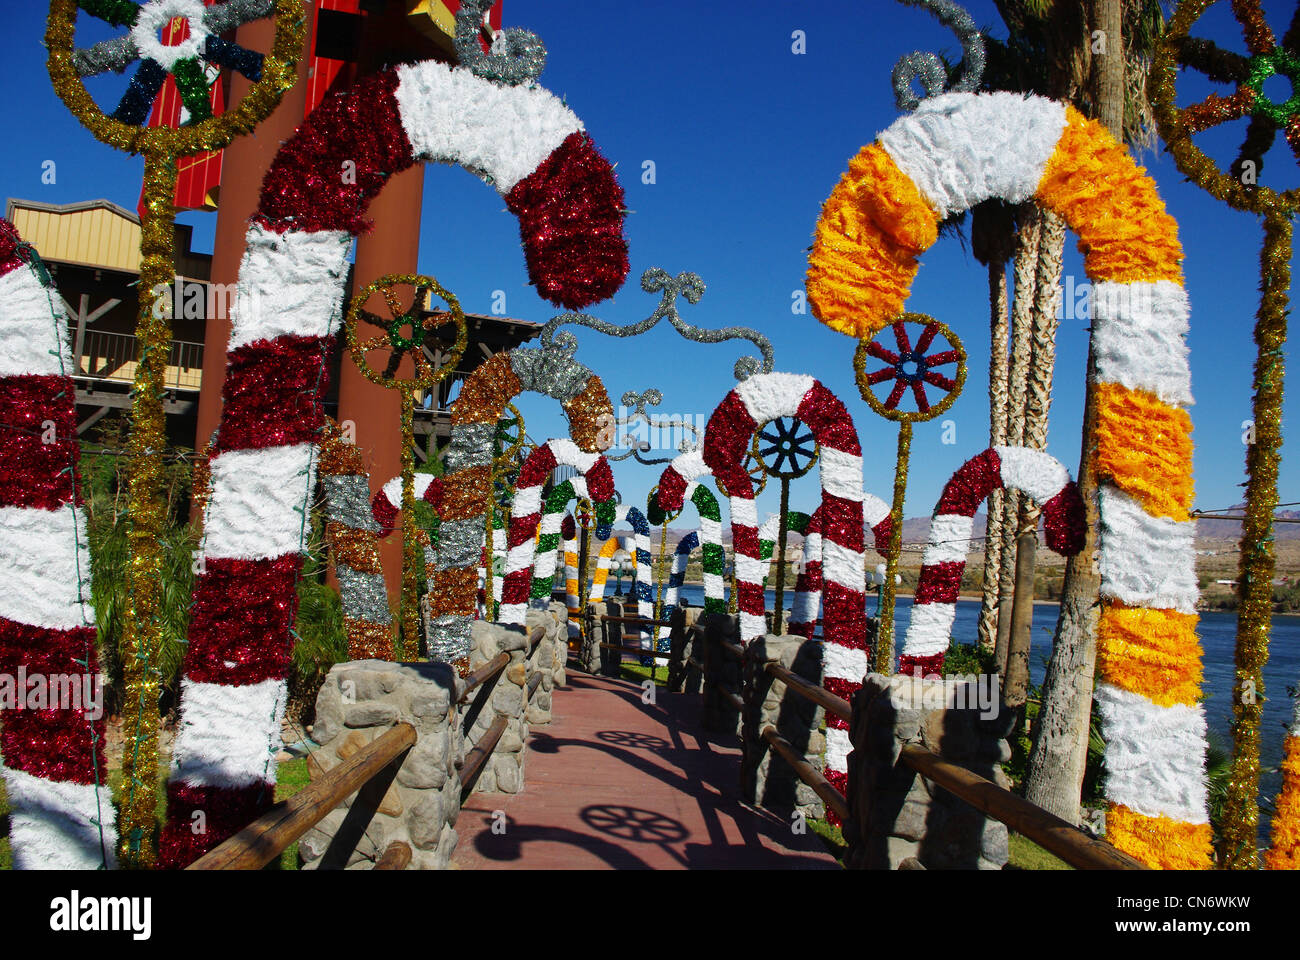 christmas decorations on colorado river in laughlin nevada stock image - Southwest Christmas Decorations